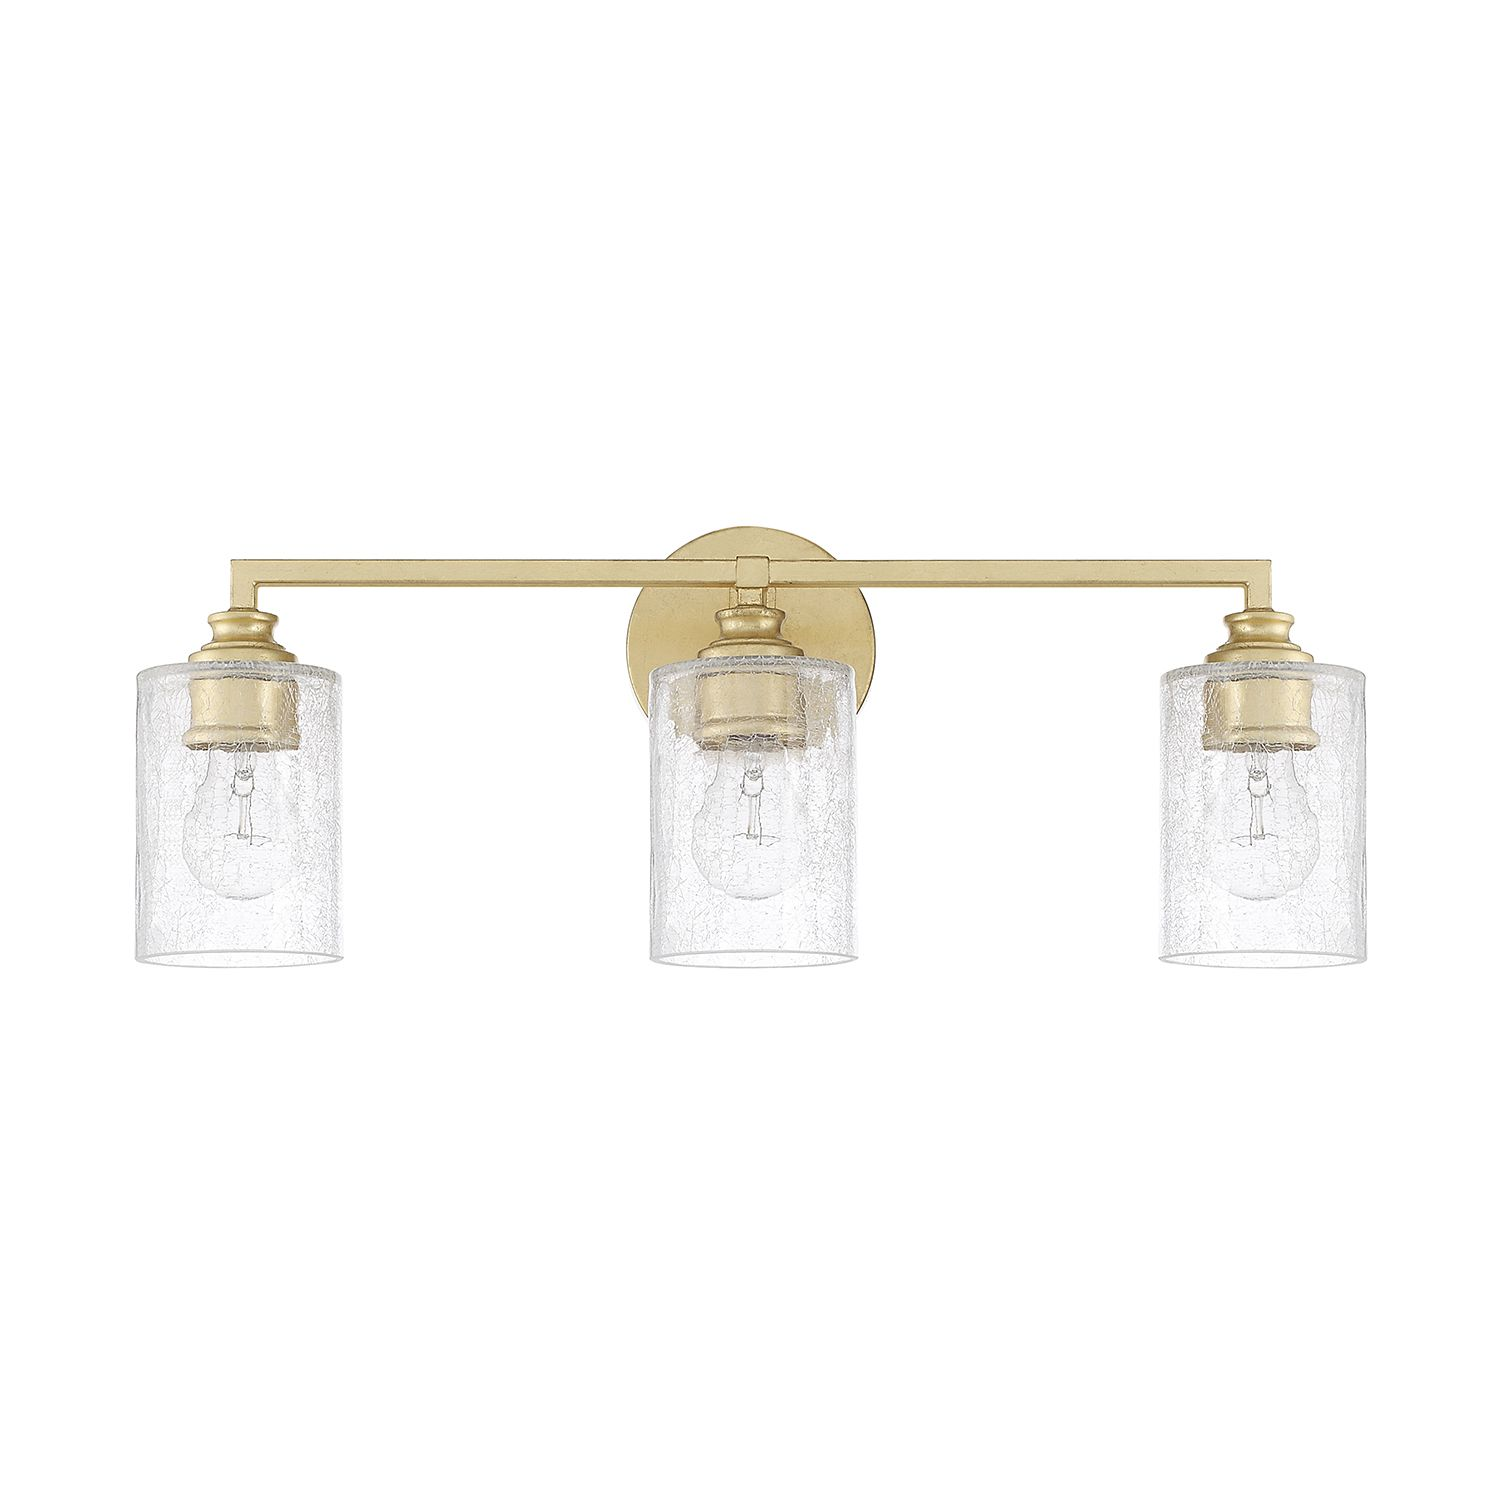 Powder 3 Light Vanity Capital Lighting Fixture Company